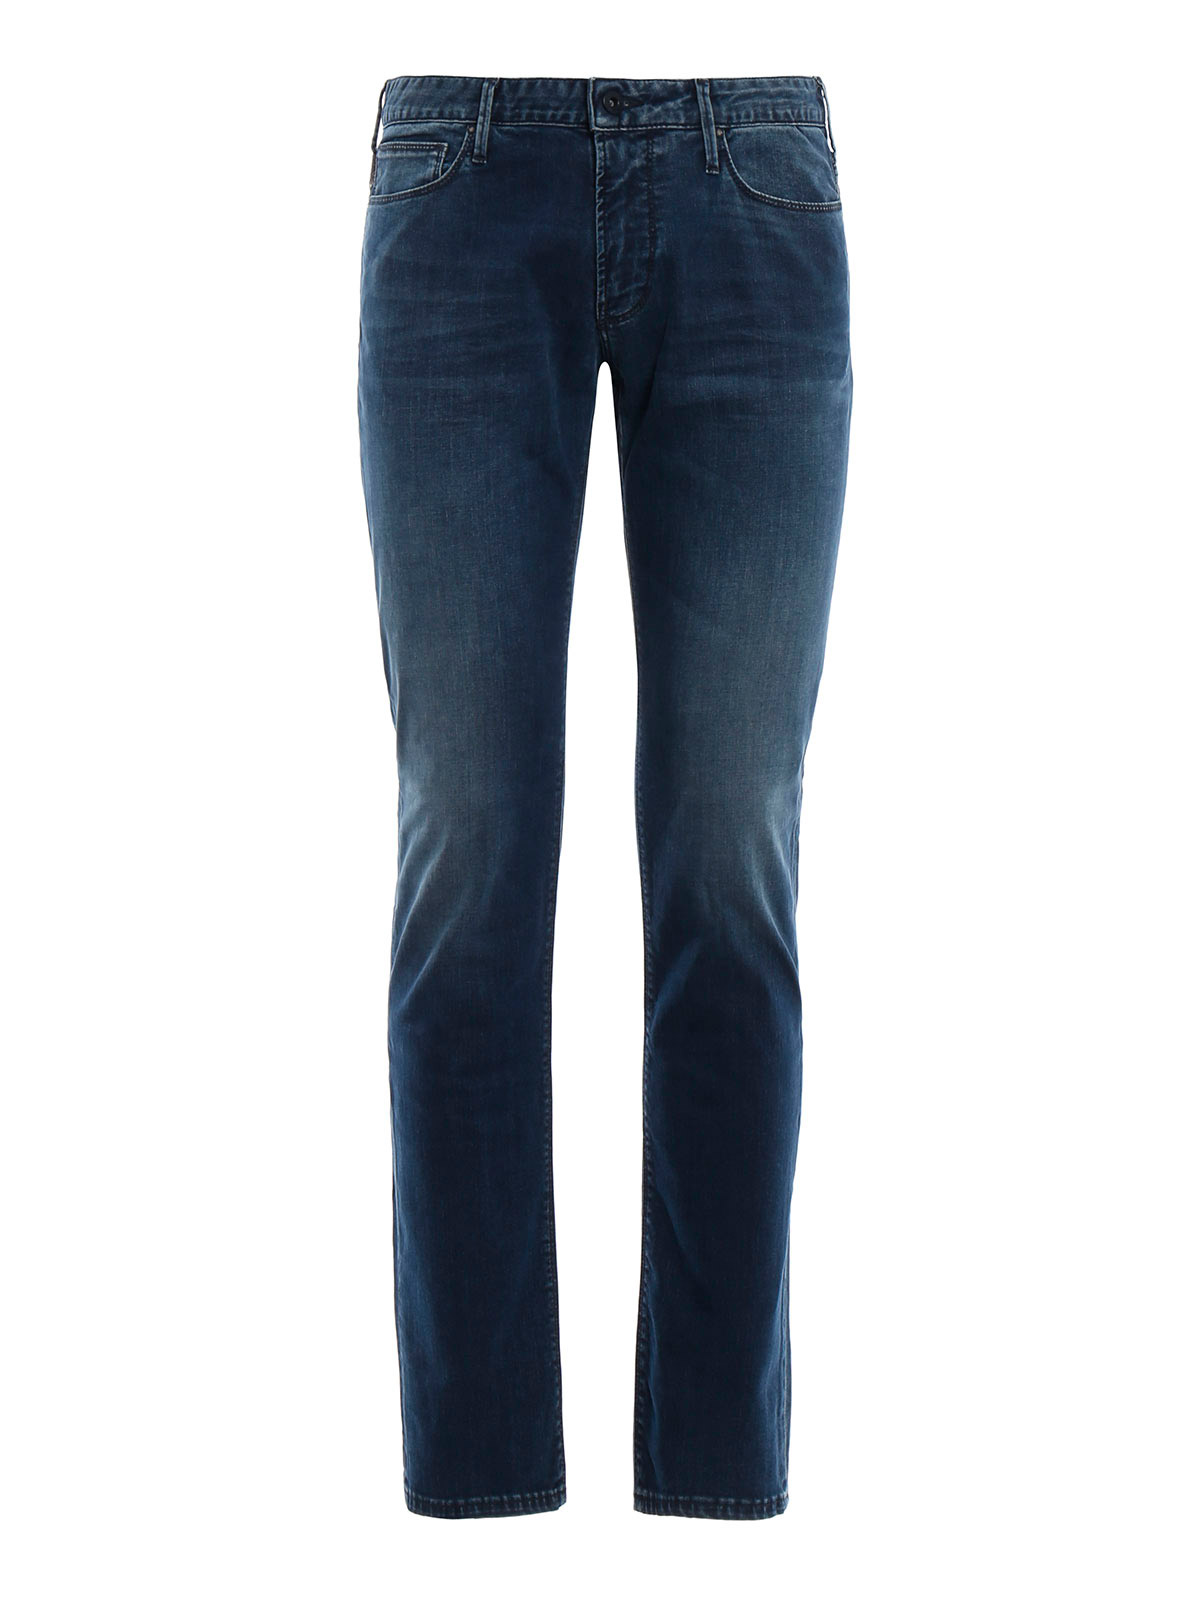 Picture of EMPORIO ARMANI | Men's Slim Fit Jeans J06